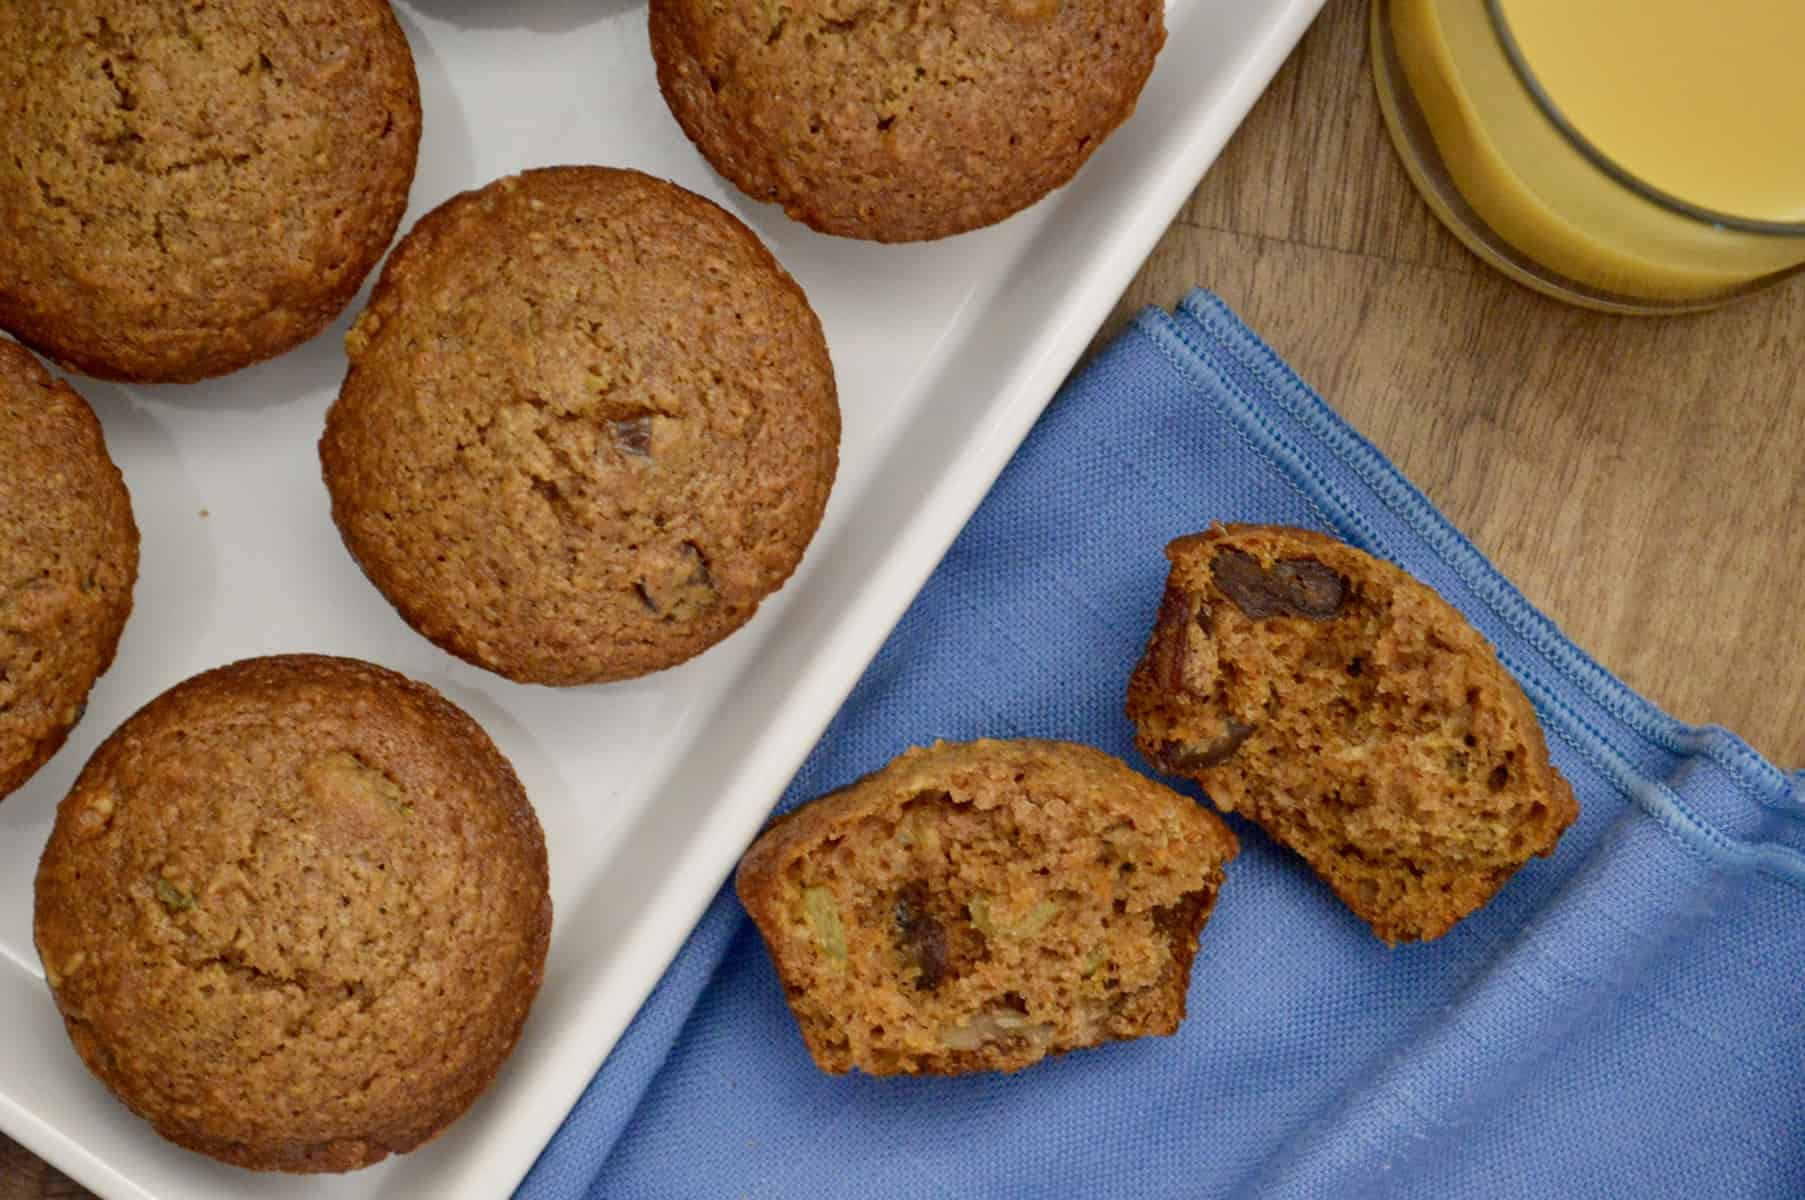 healthy carrot muffins on a white plate with a glass of orange juice on the side